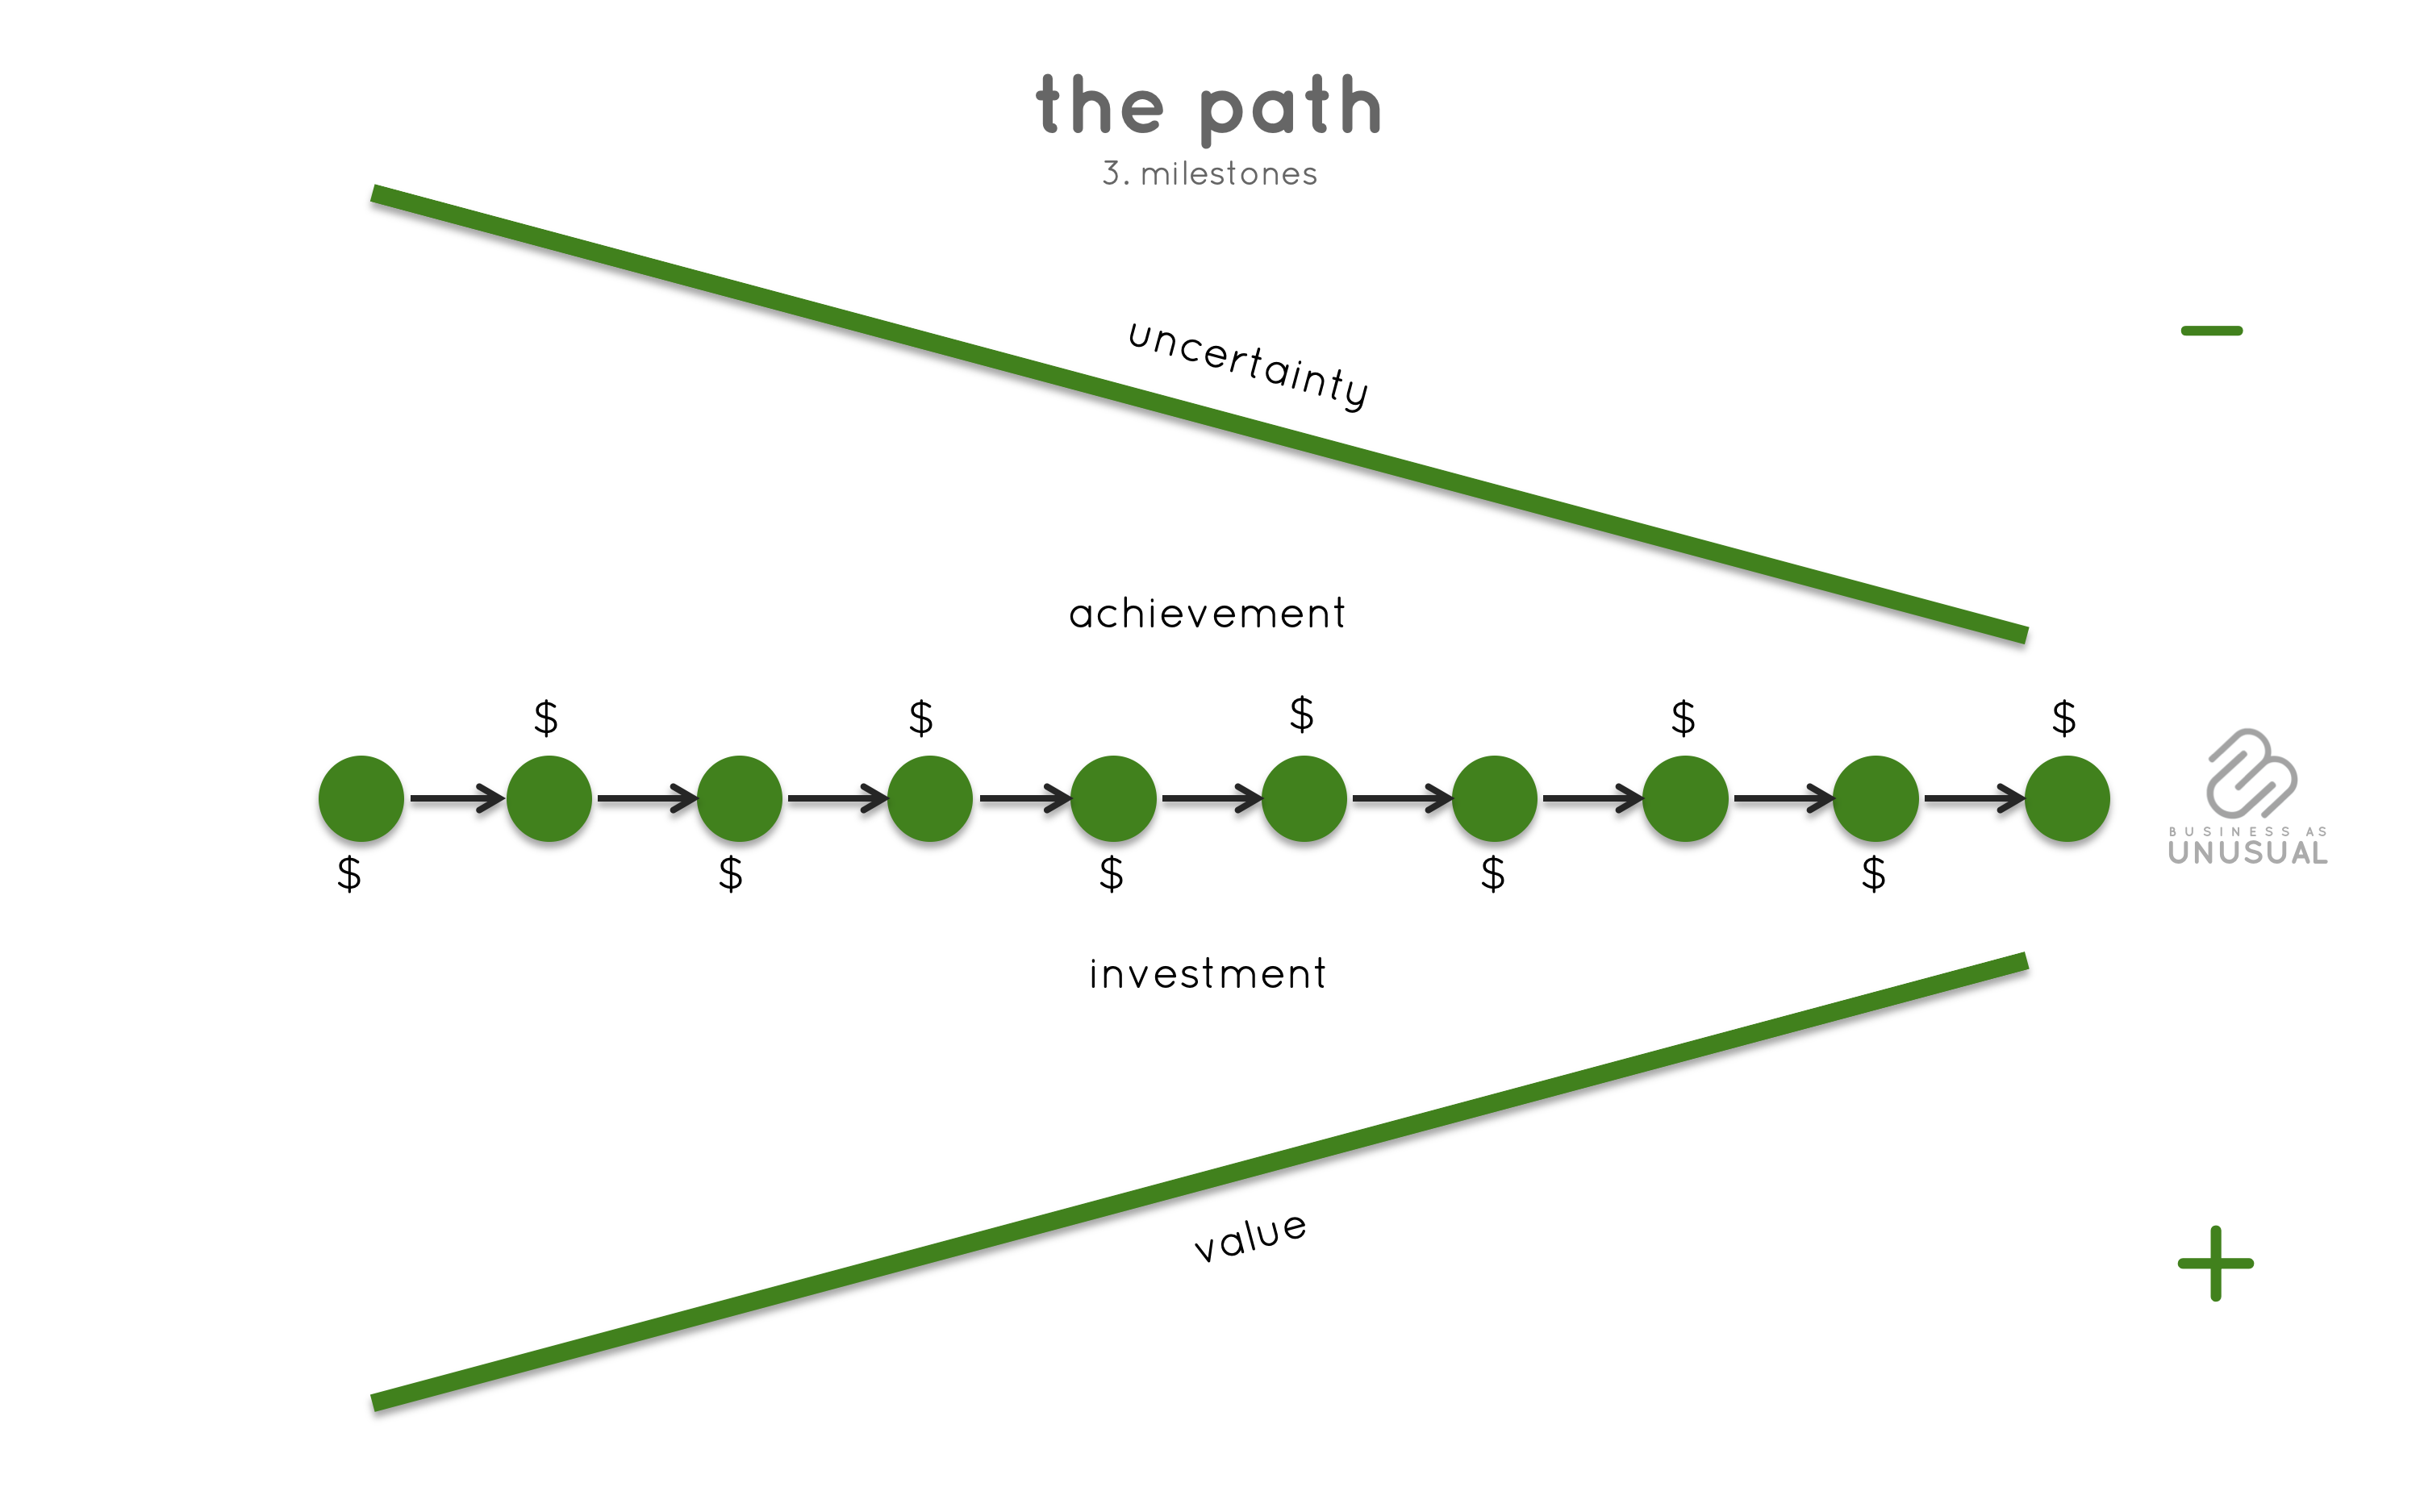 Human-Centered Entrepreneurship the path milestones